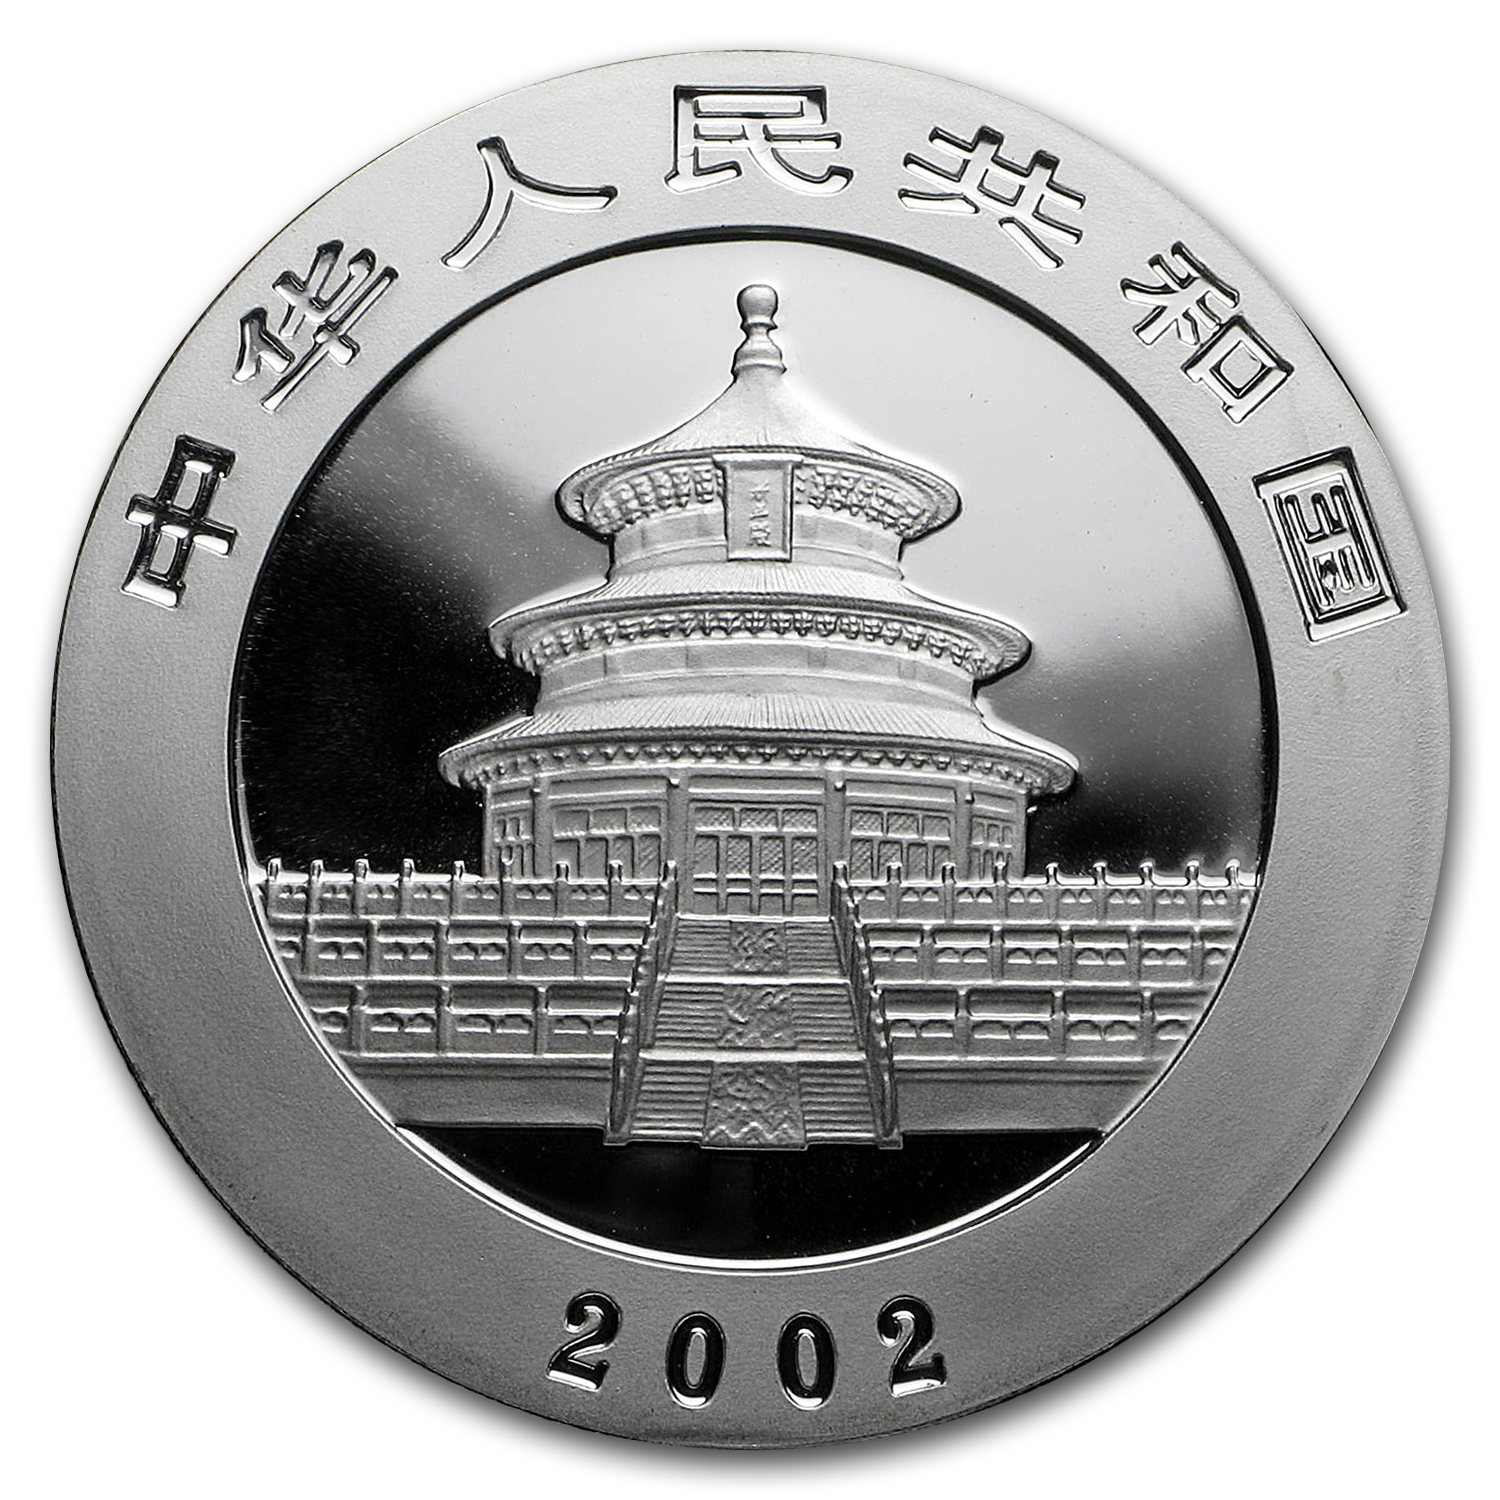 2002 China 1 oz Silver Panda BU (Not in Plastic)